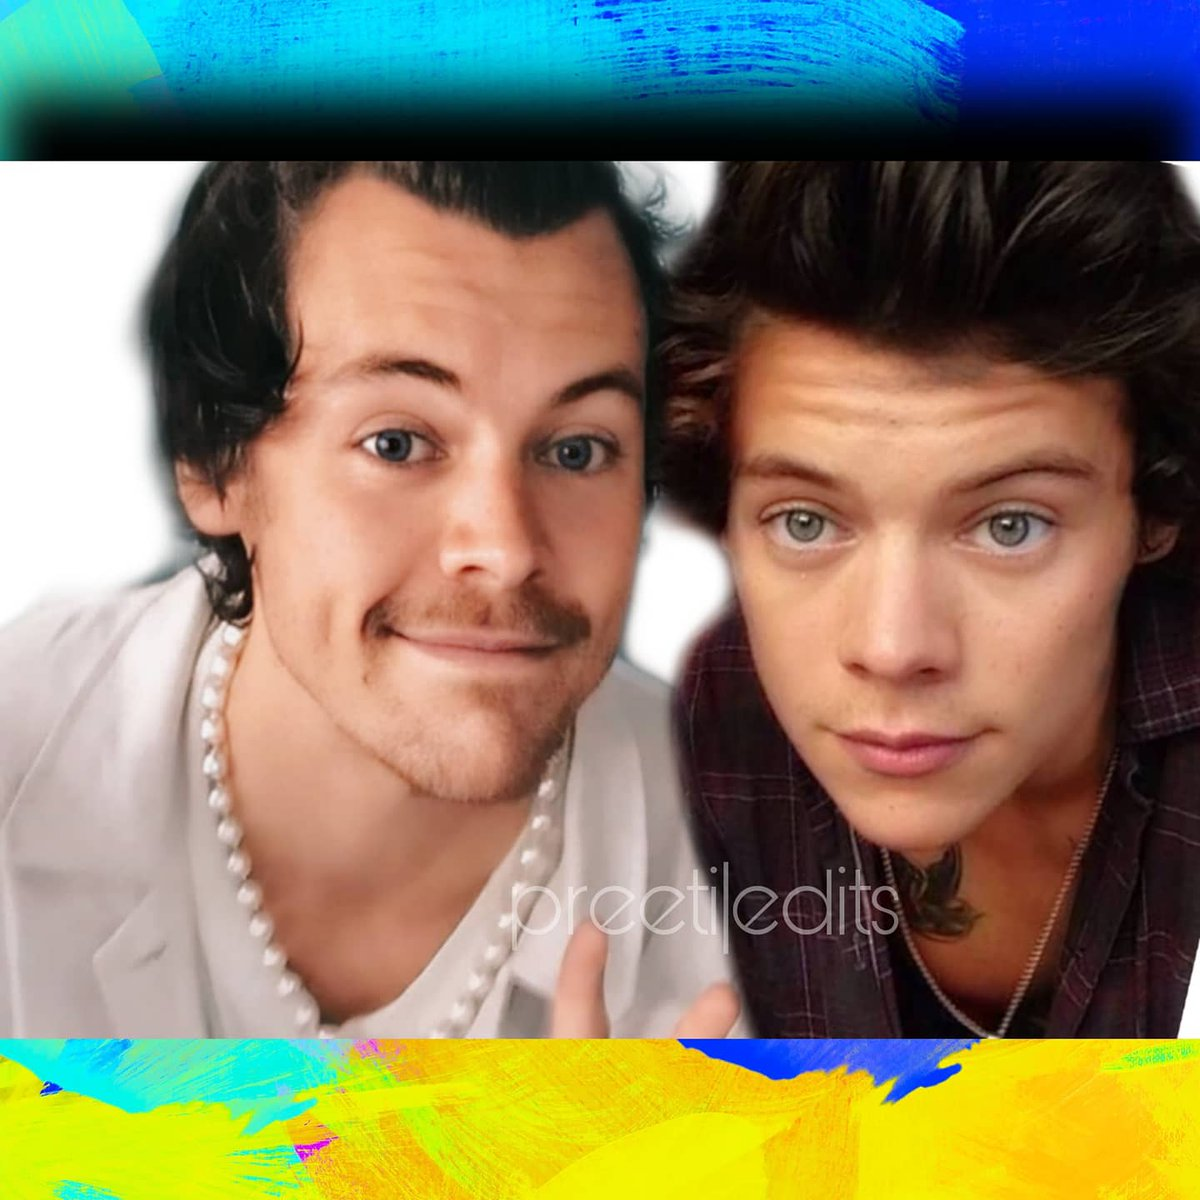 I am not a very good editor 😬😛 HARRY WITH HARRY ❤️  #Harrystyles  #harrystylesvogue  #DontWorryDarling  #HARRY  #BestofCapitalJBB  #BBMM